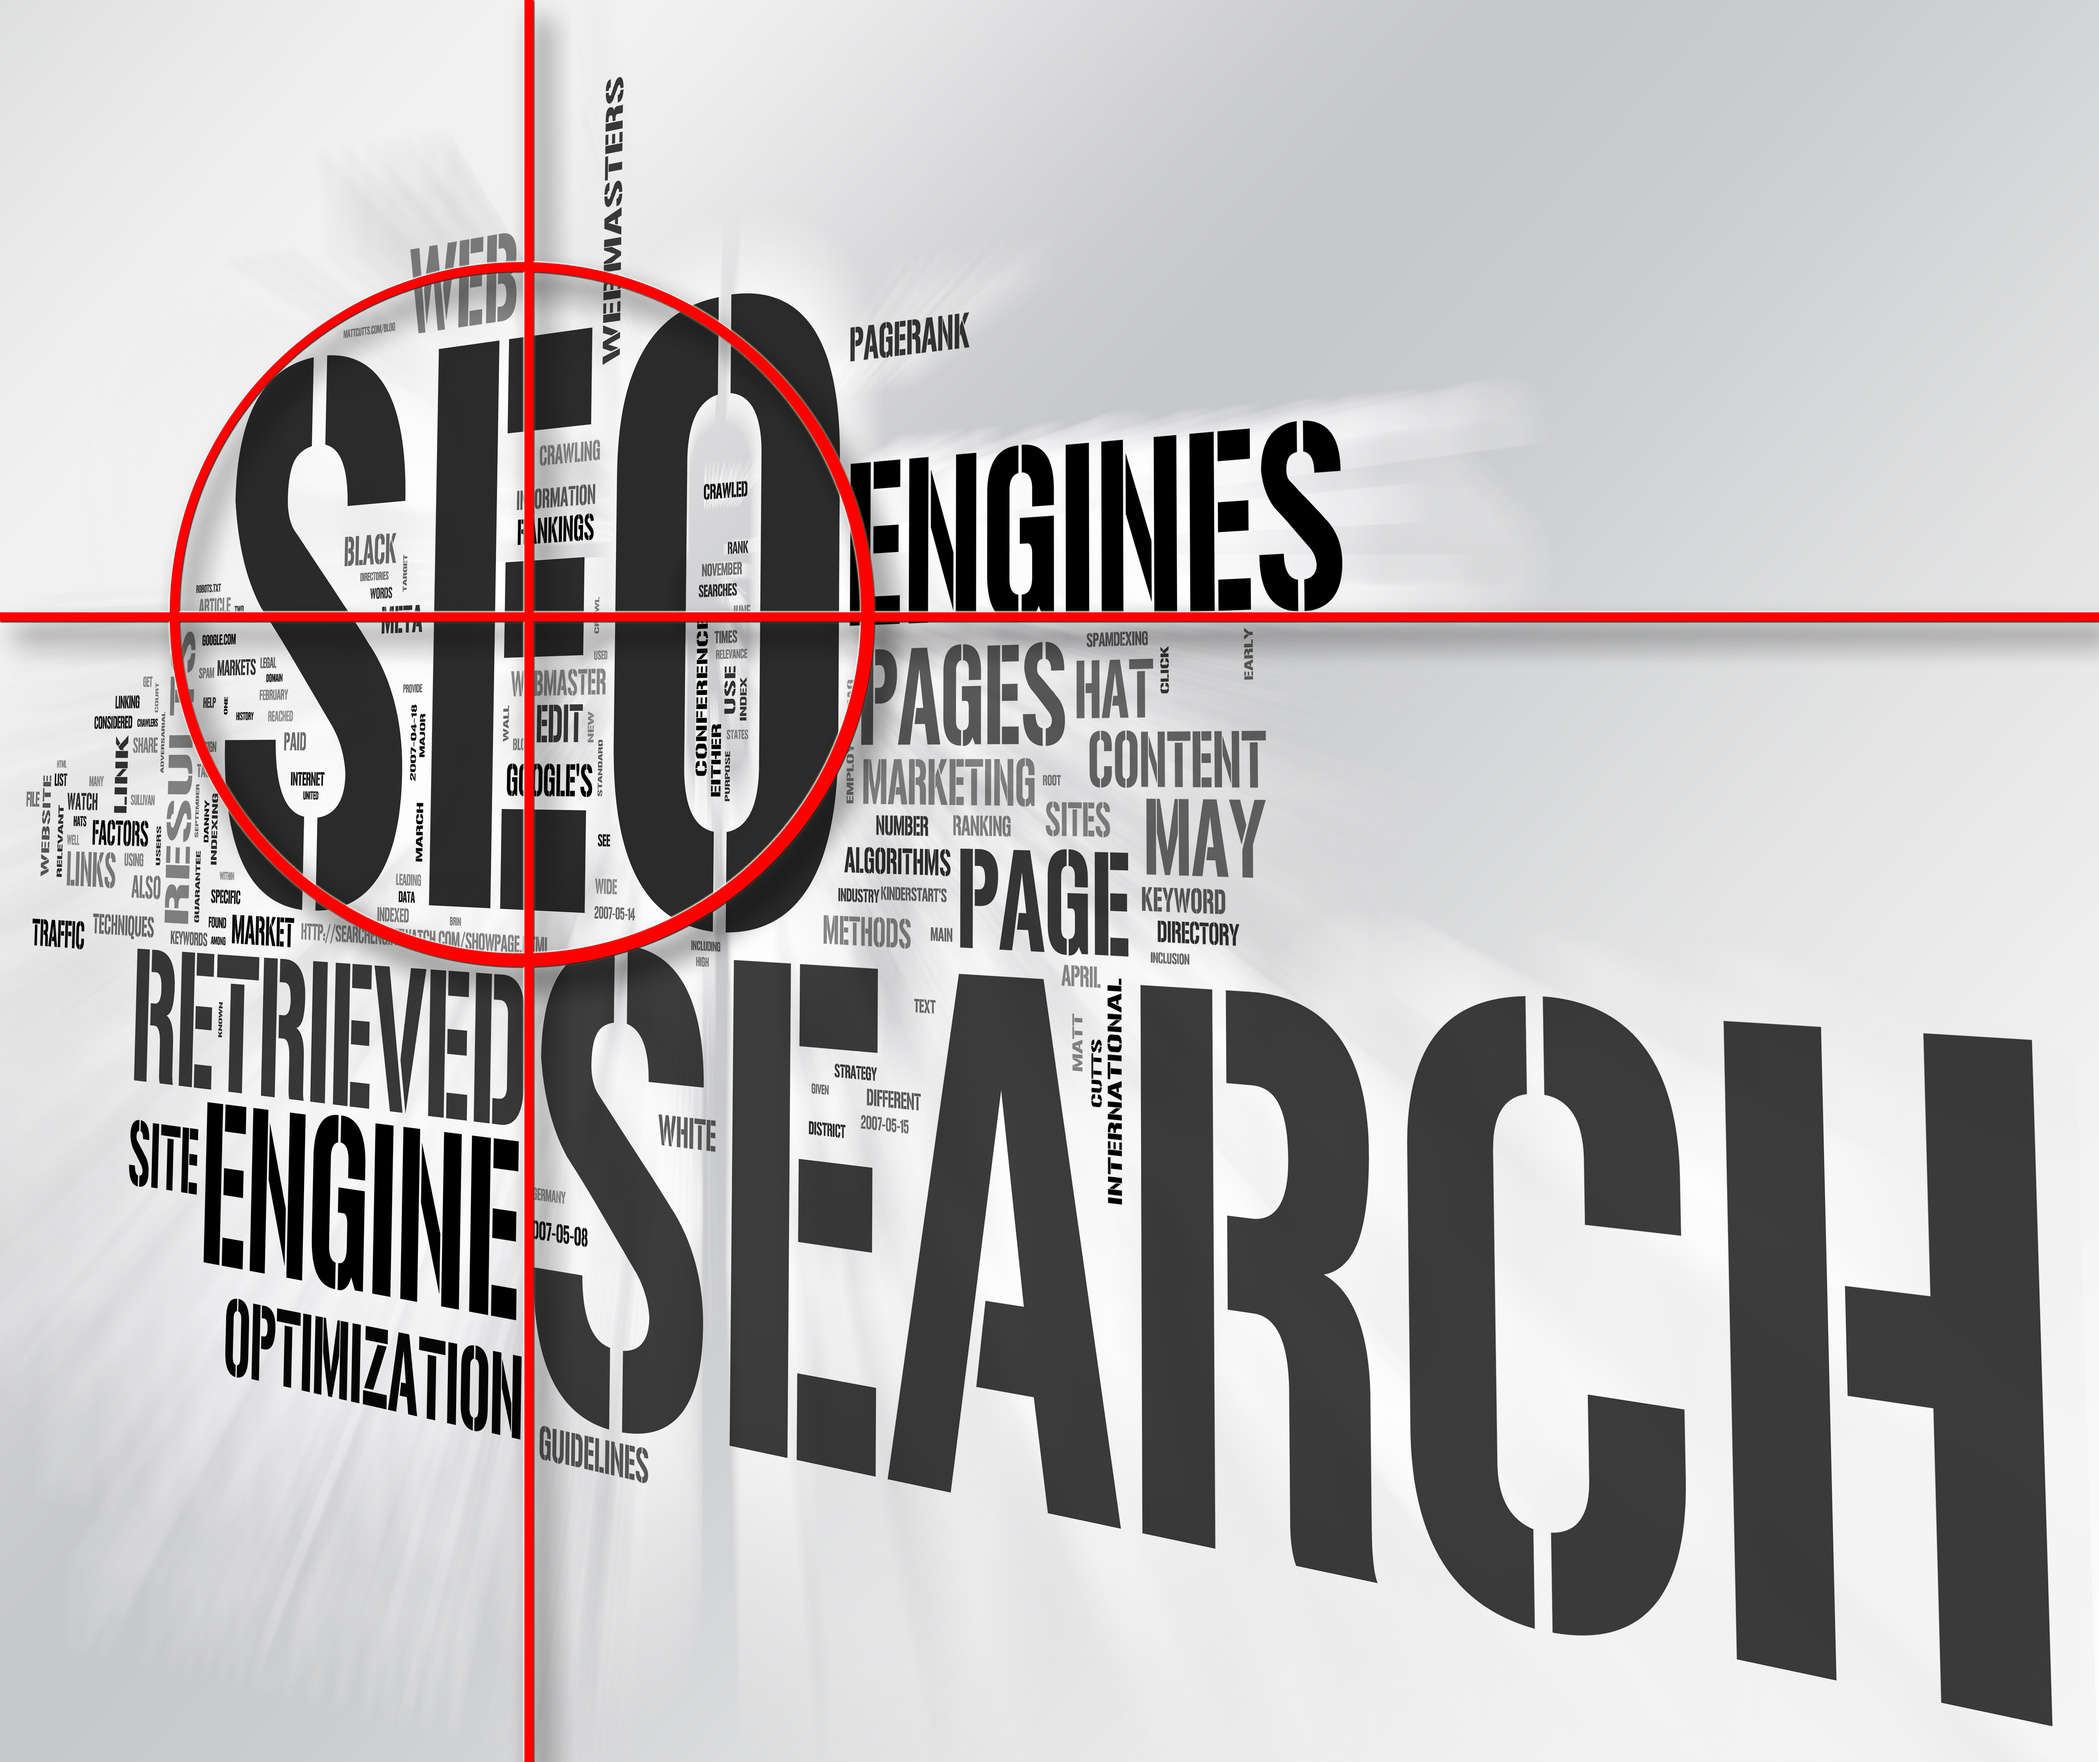 analyze the SEO of your site and send a full report with recommendations